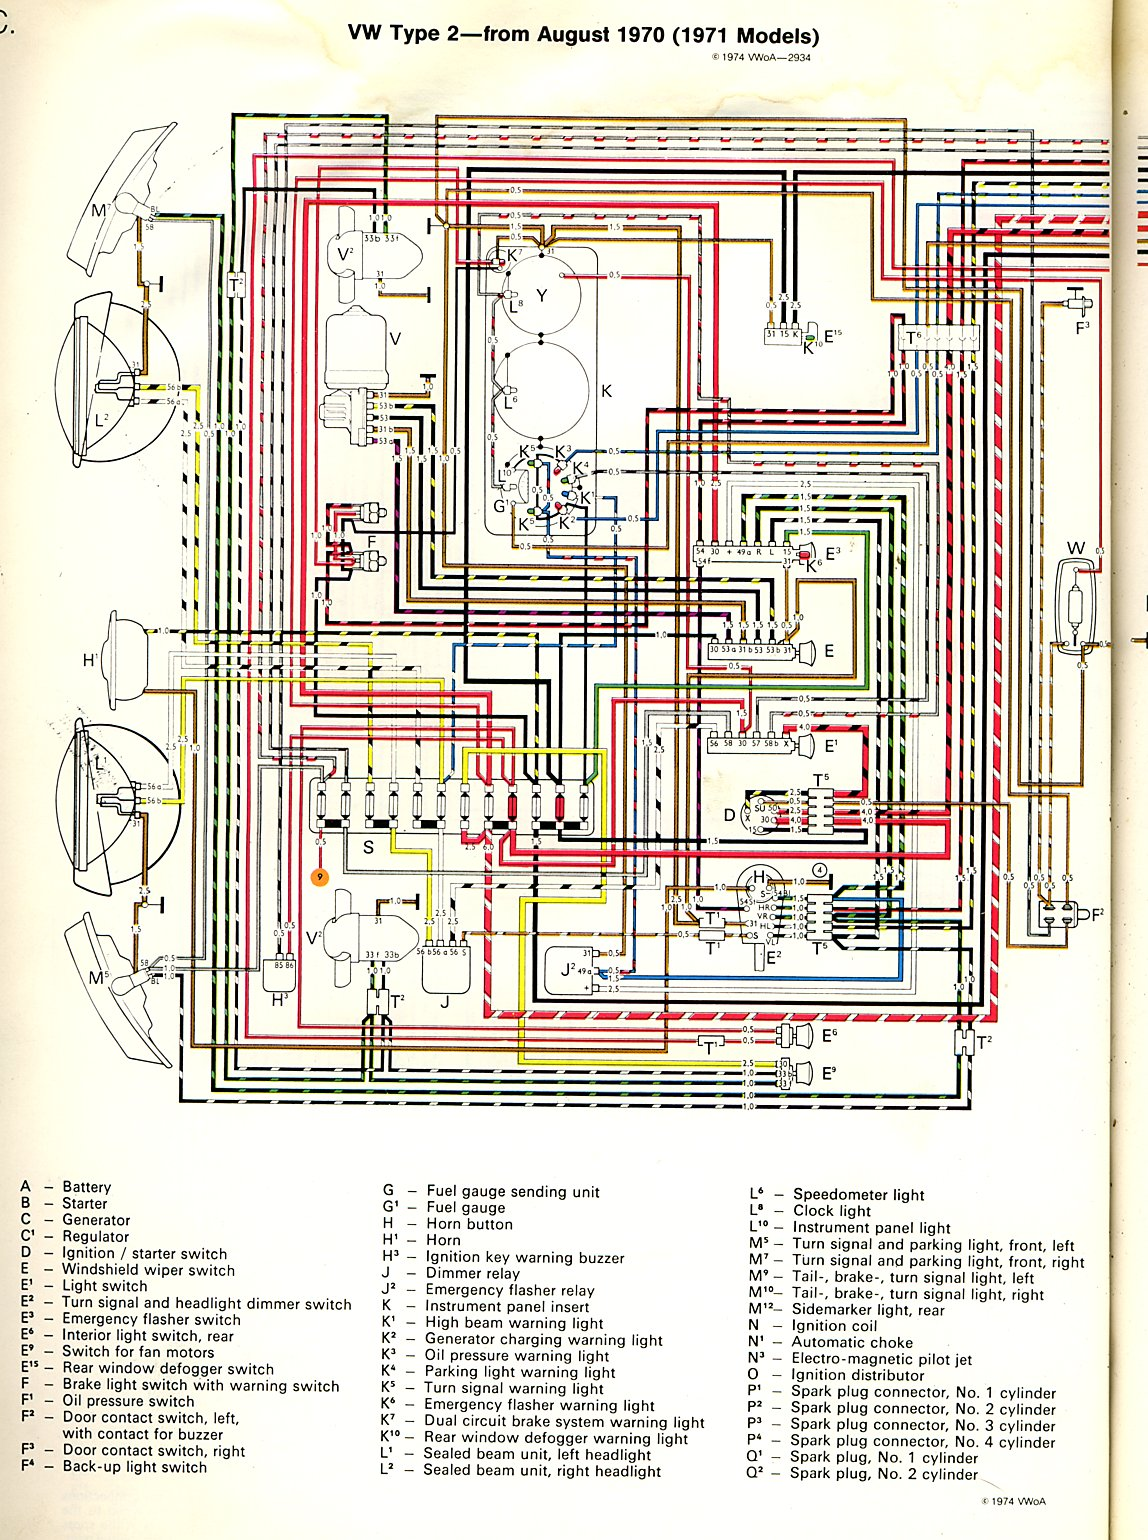 baybus_71a 71 vw bus wiring diagram 1970 vw bus fuse box diagram \u2022 wiring Wiring Harness Diagram at sewacar.co